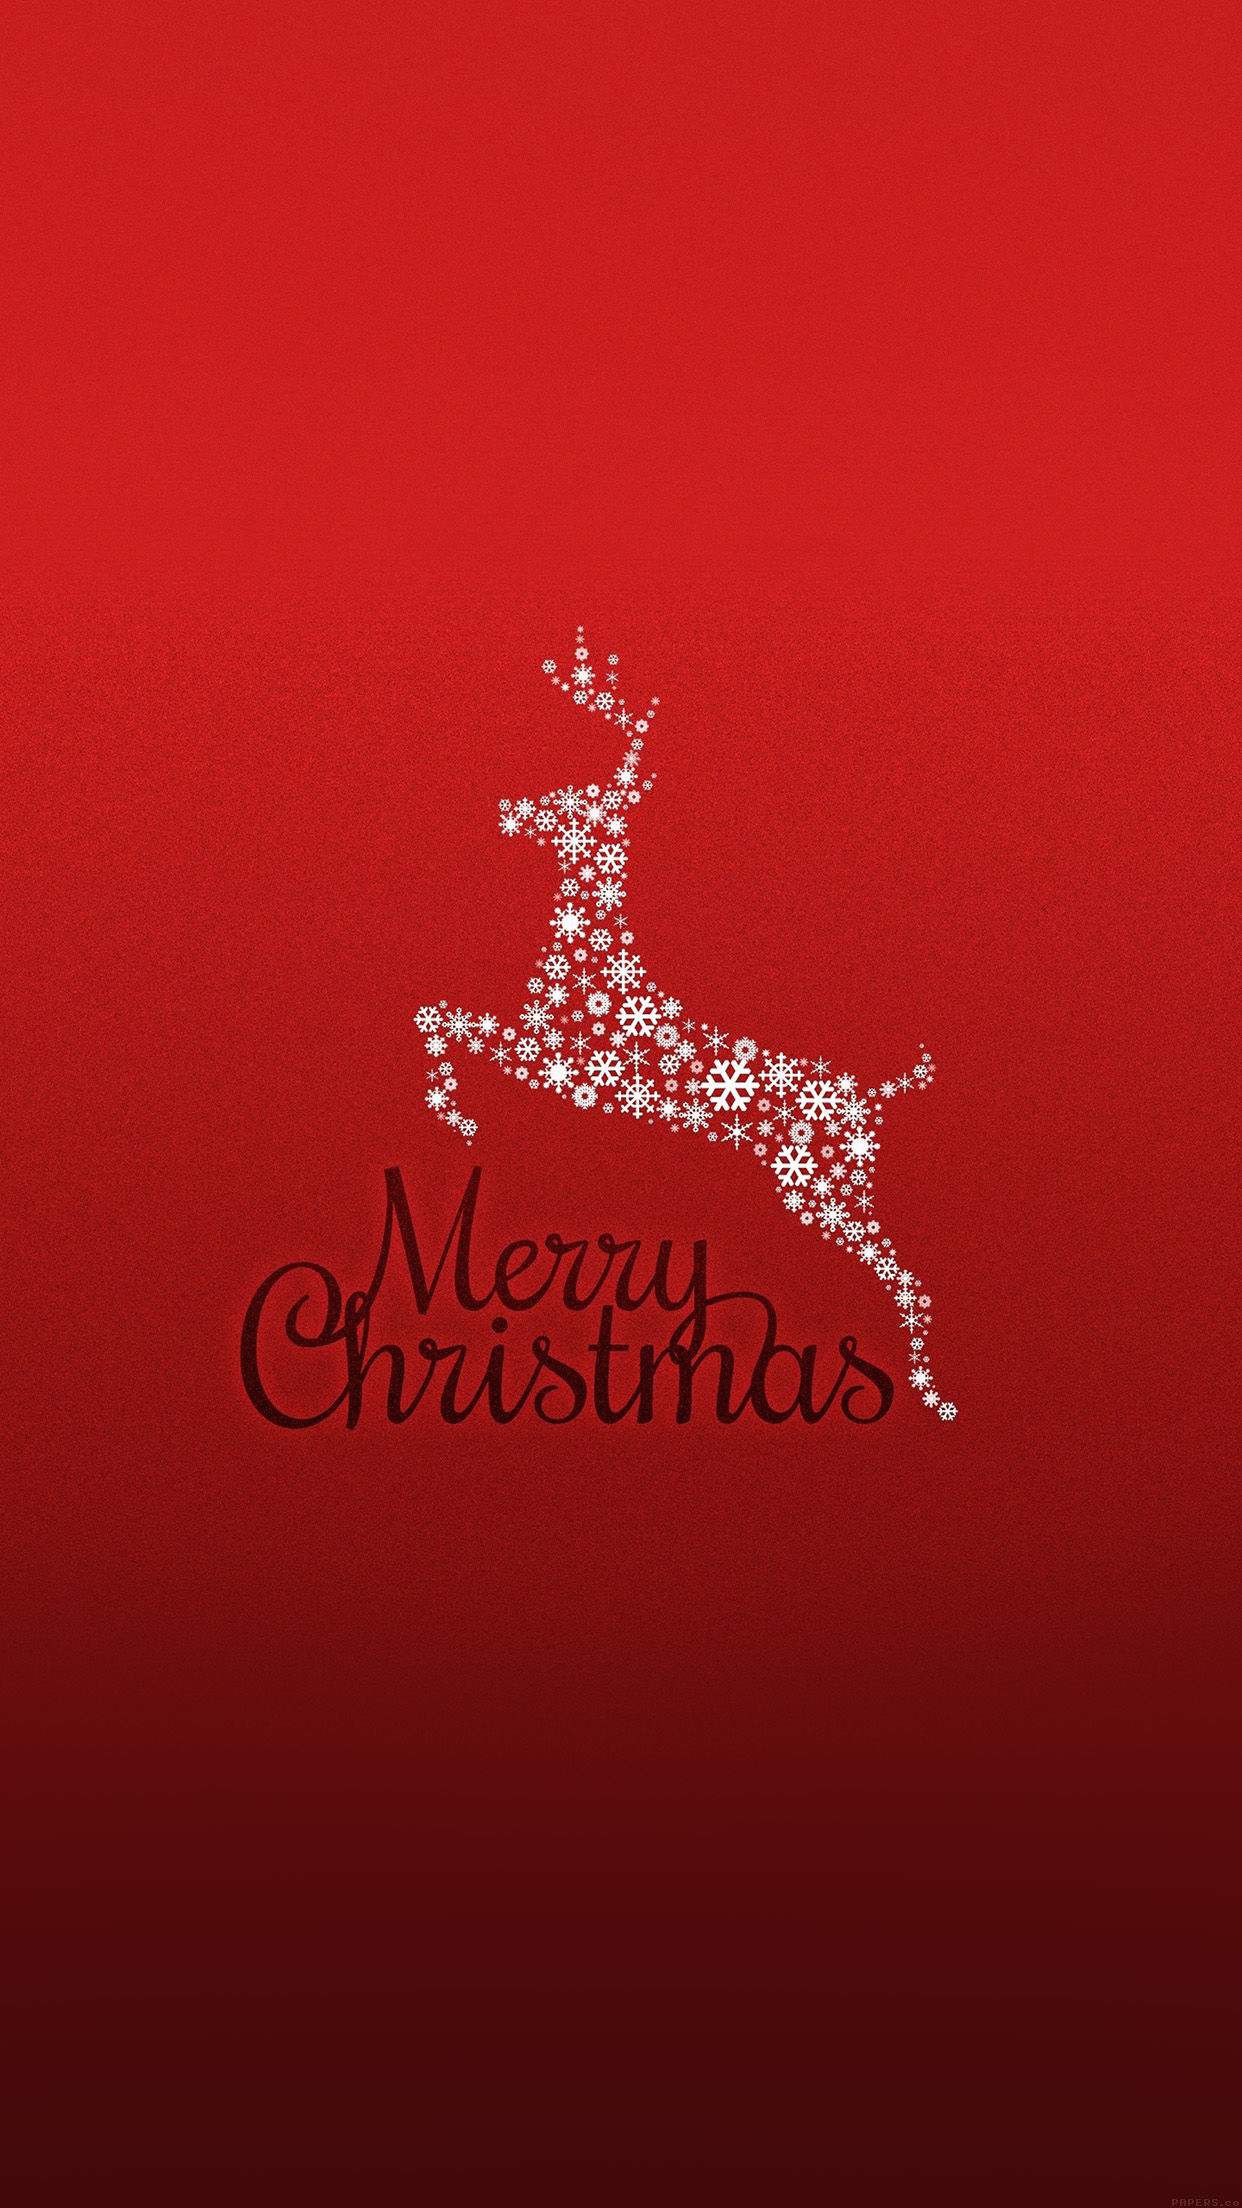 219559 Merry Christmas Reindeer Wallpaper